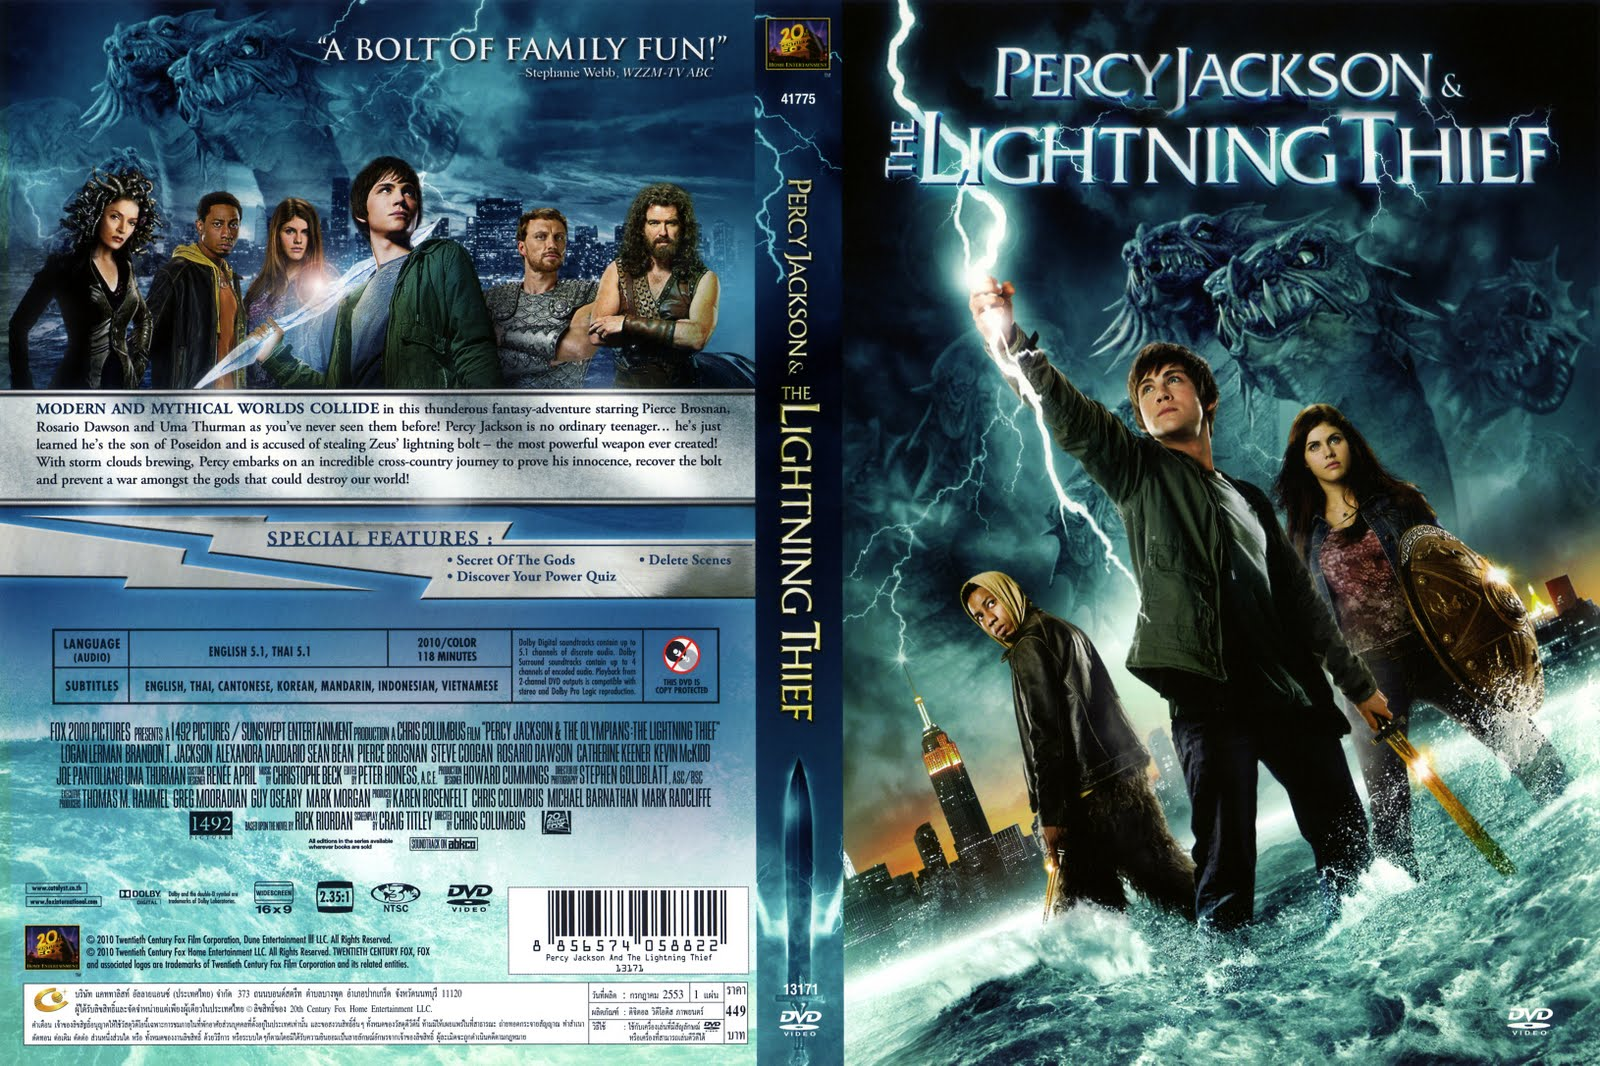 percy jackson and the olympians the lightning thief book report The film is loosely based on the lightning thief, the first novel in the percy jackson & the olympians series by rick riordan it stars logan lerman as percy jackson alongside an ensemble cast that includes brandon t jackson, alexandra daddario, jake abel, rosario dawson, steve coogan, uma thurman, catherine keener, kevin.